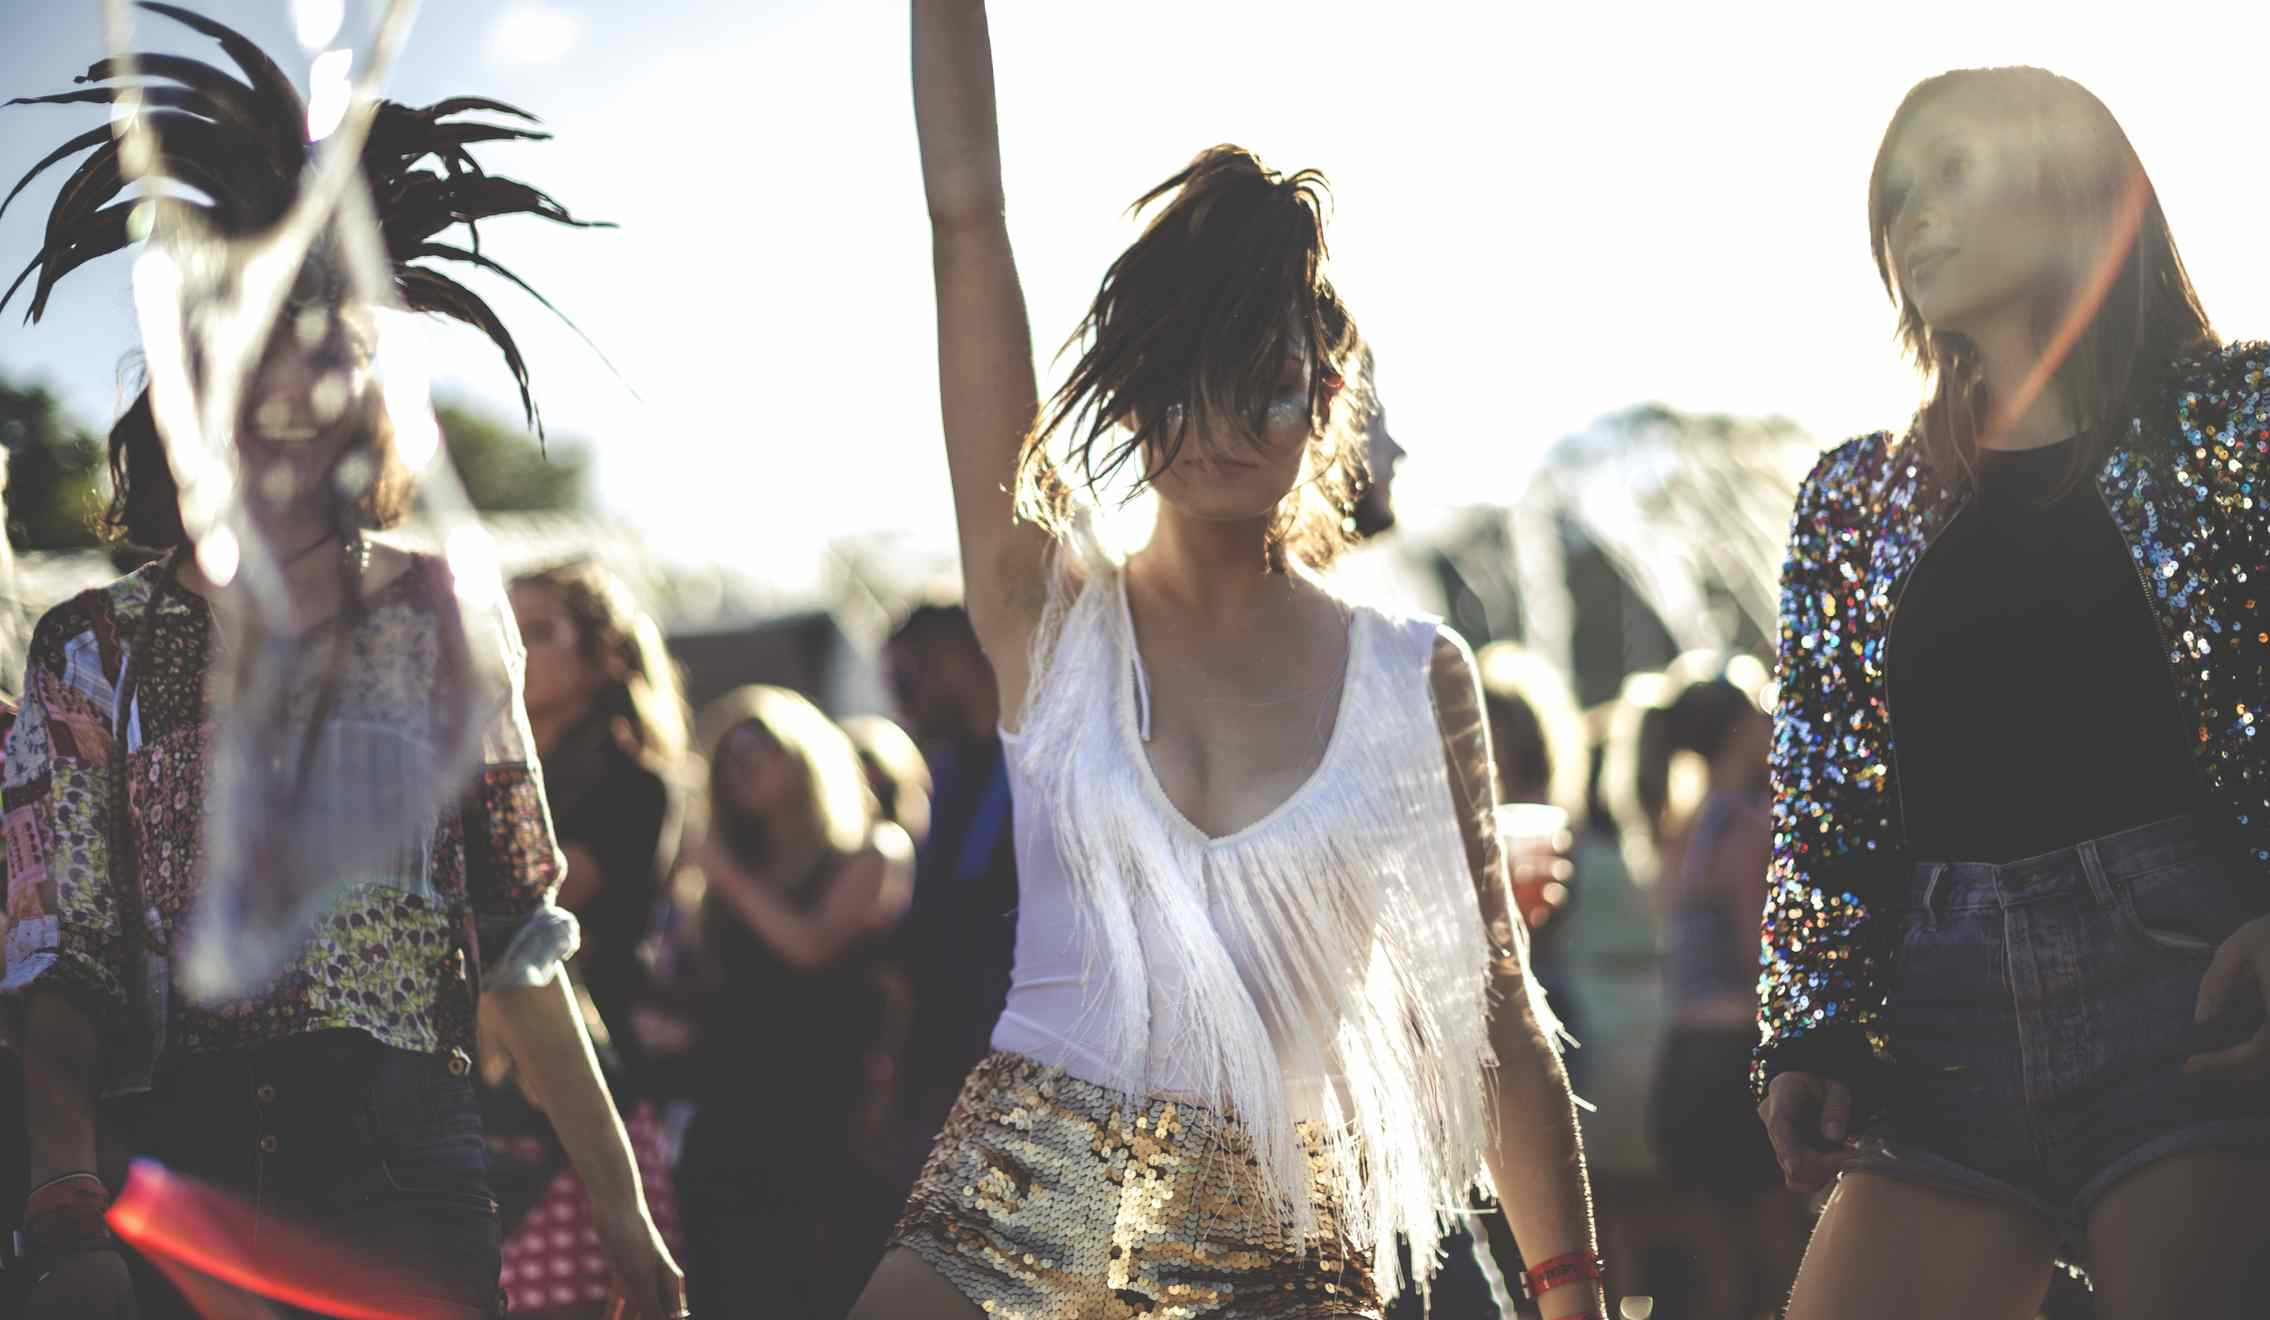 Young woman at a summer music festival wearing golden sequinned hot pants, dancing among the crowd